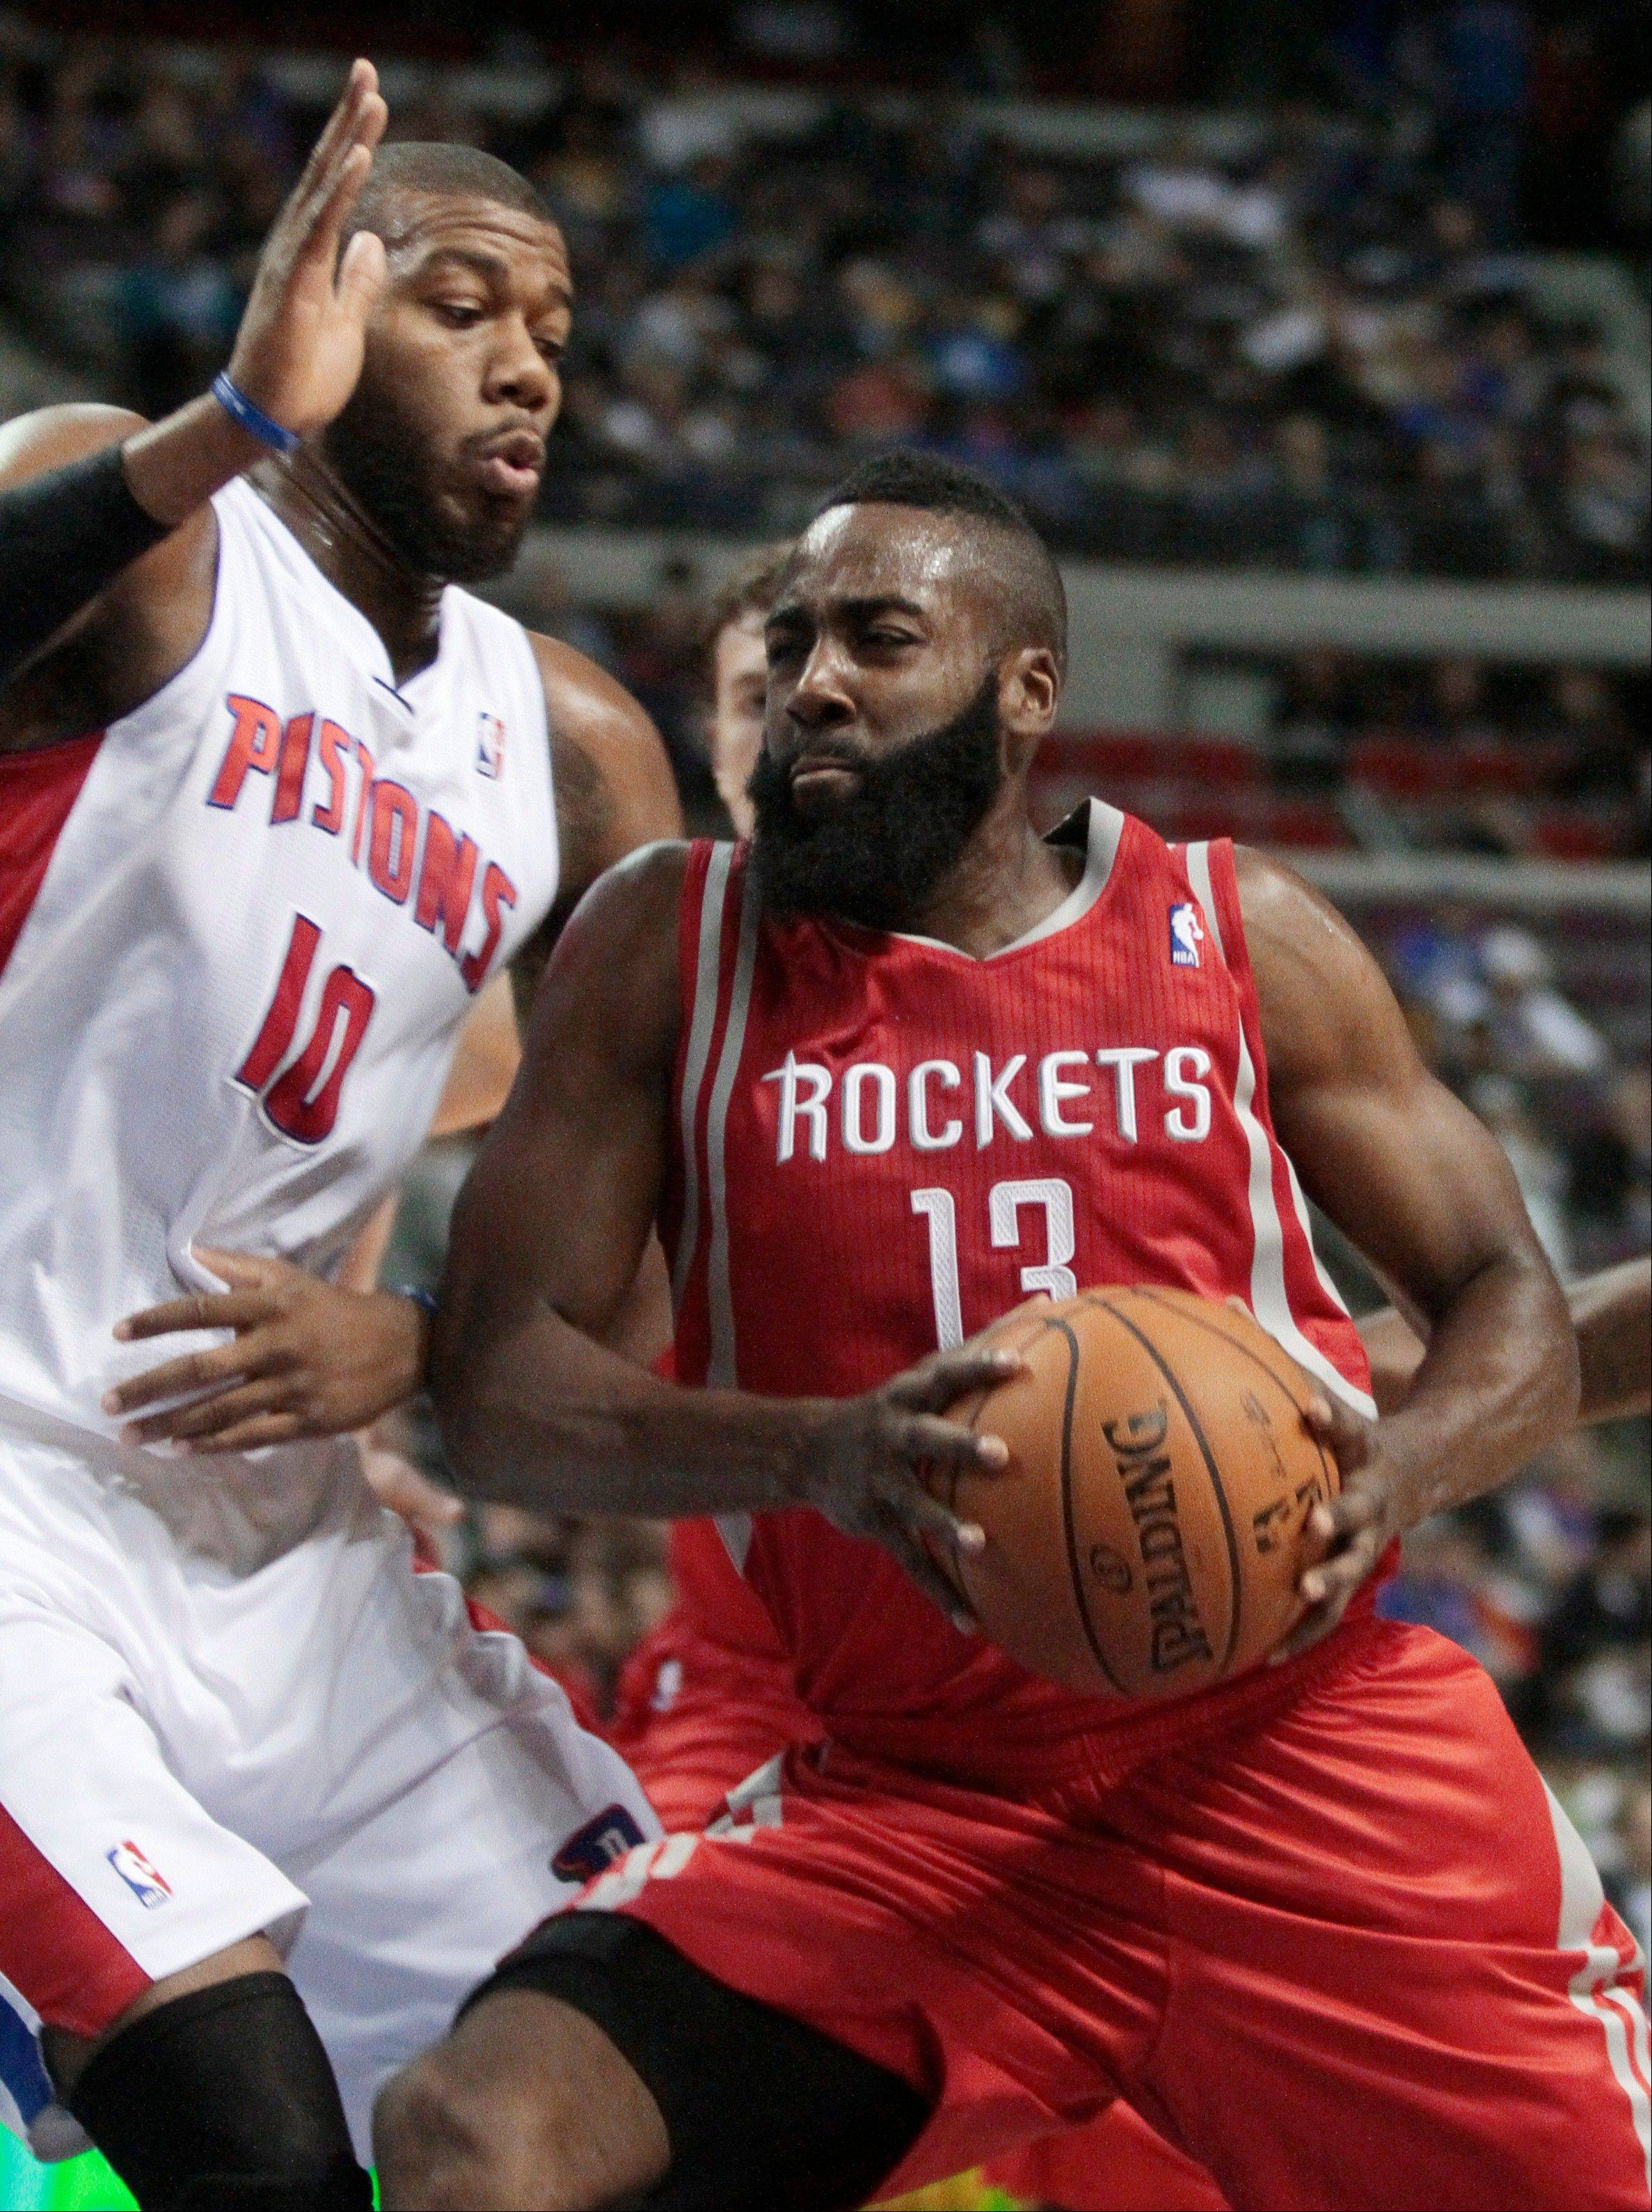 Houston Rockets guard James Harden drives to the basket against Detroit Pistons center Greg Monroe Wednesday during the first half in Detroit.